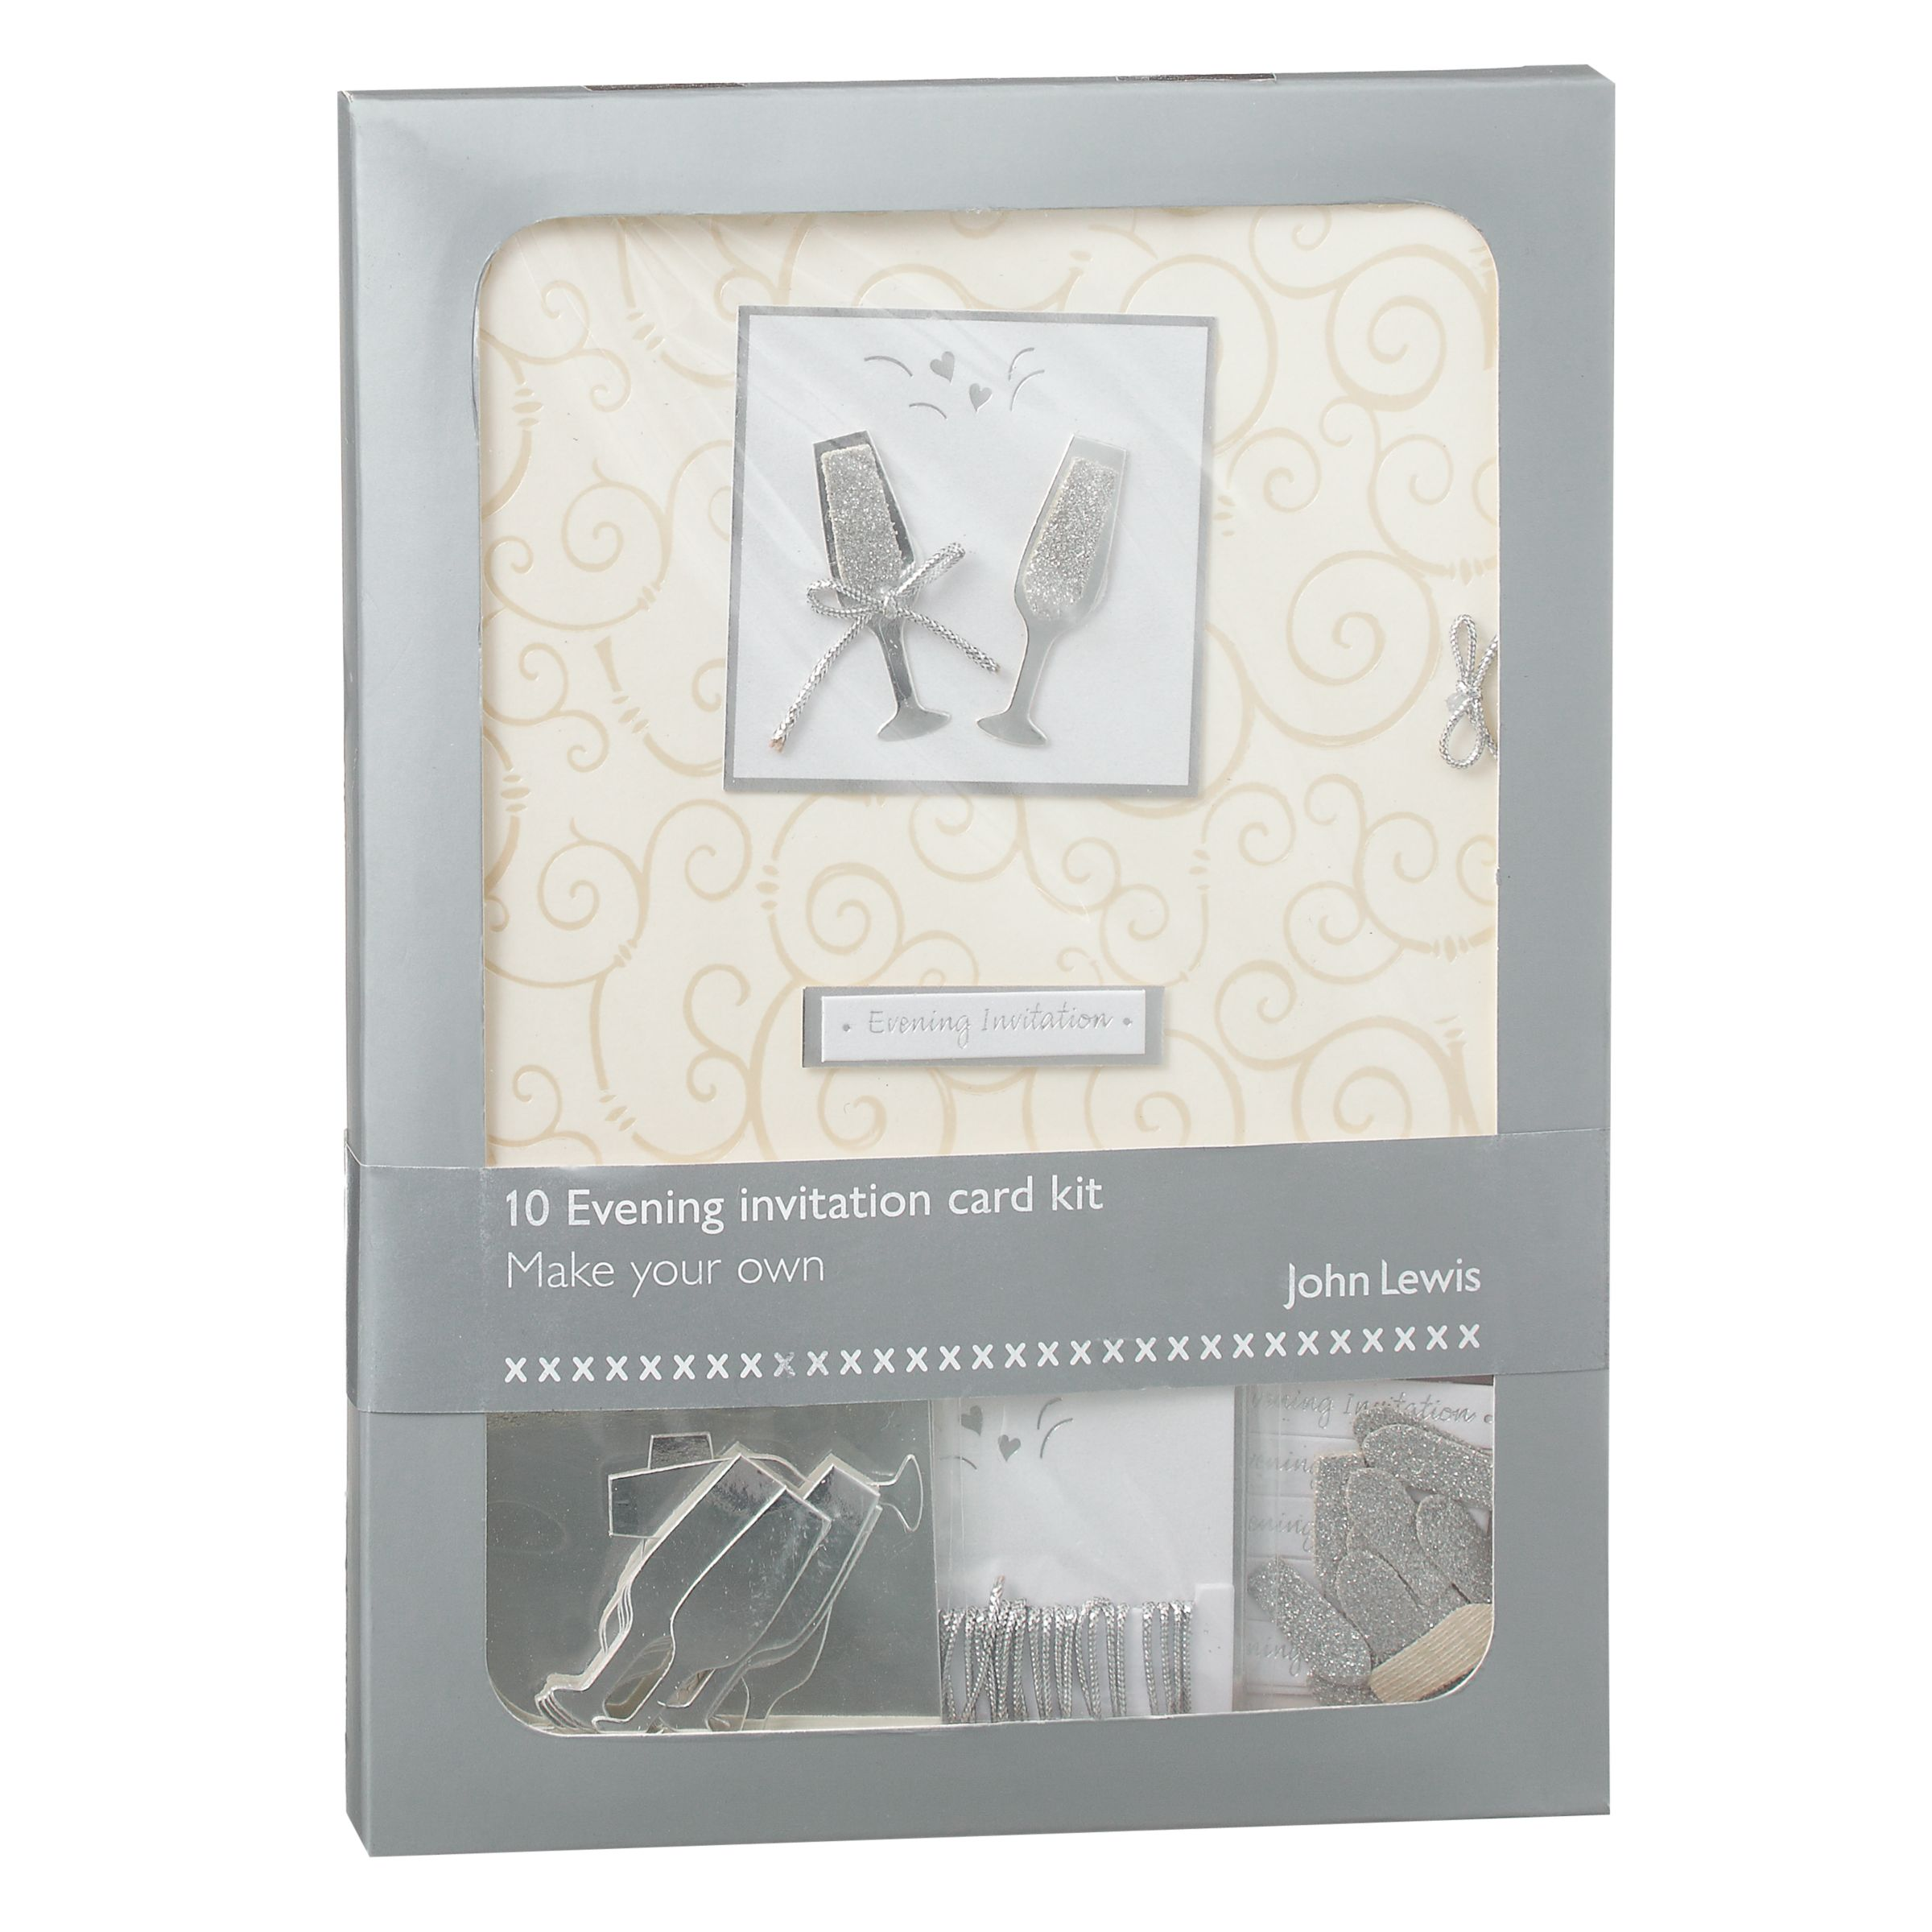 John Lewis Champagne Evening Invitation Card Kit